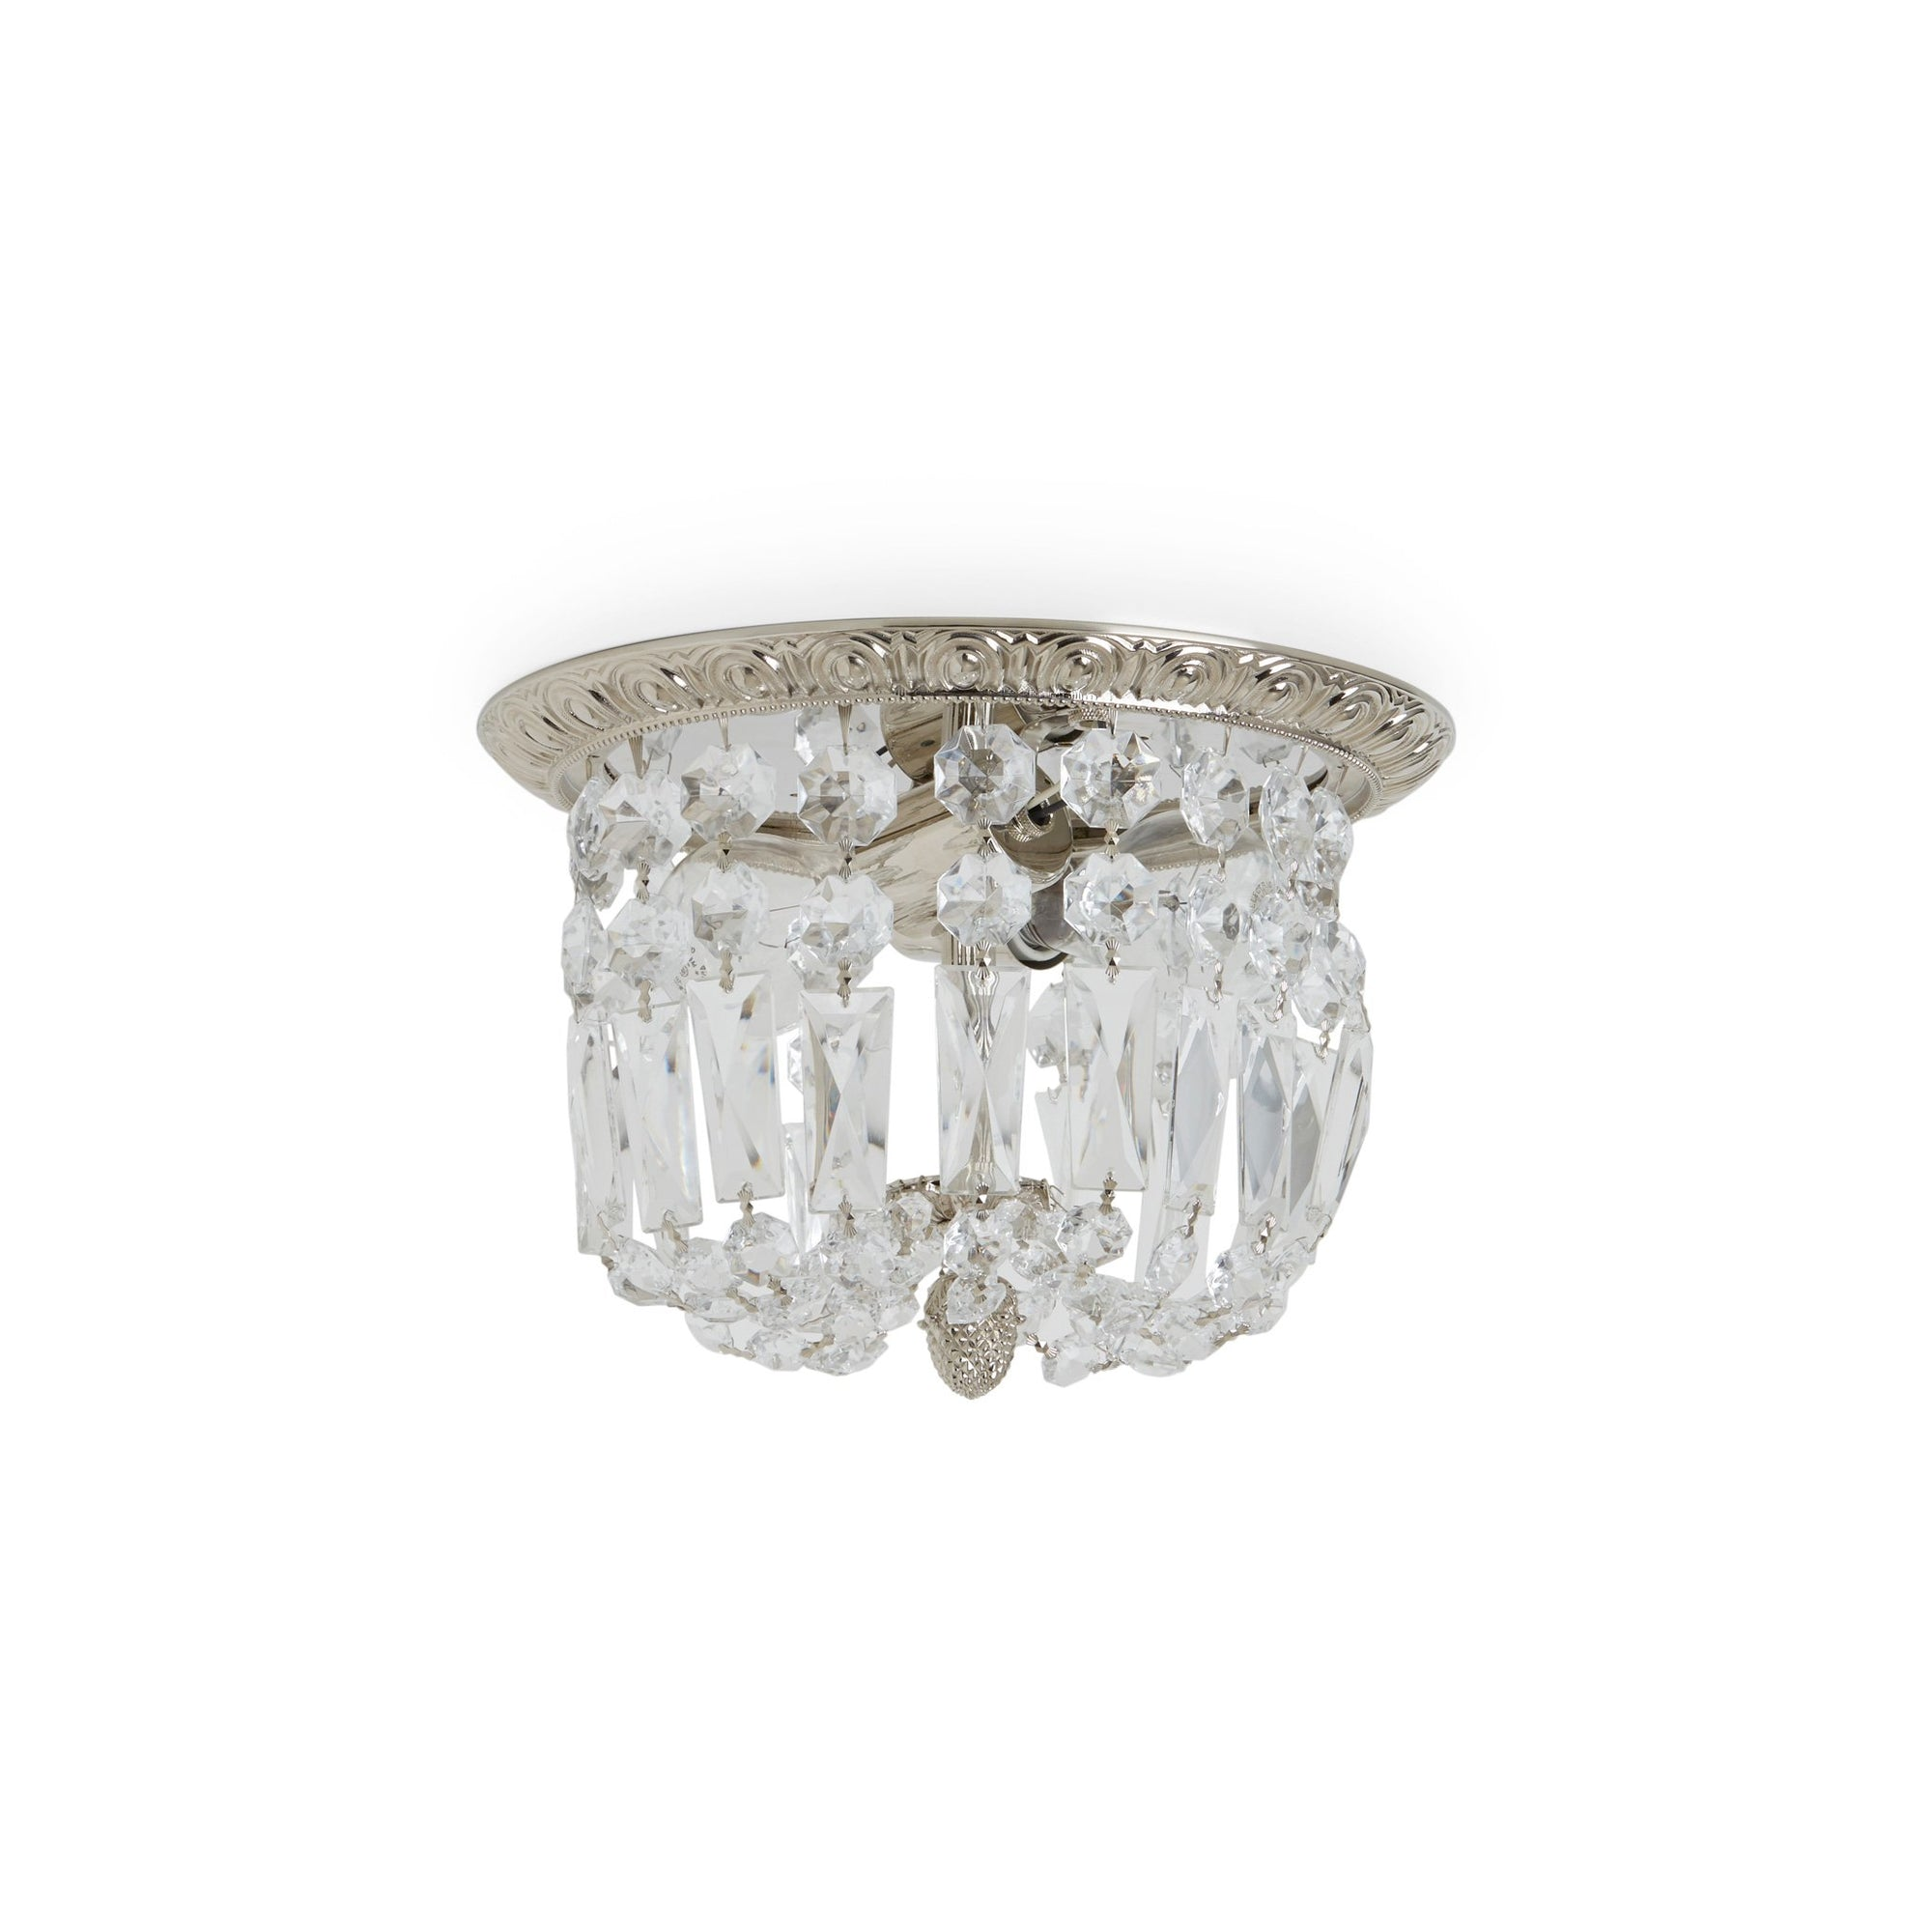 7131-DRPD-PN Sherle Wagner International Egg & Dart Ceiling Light Light with Draped Crystals in Gold plate metal finish